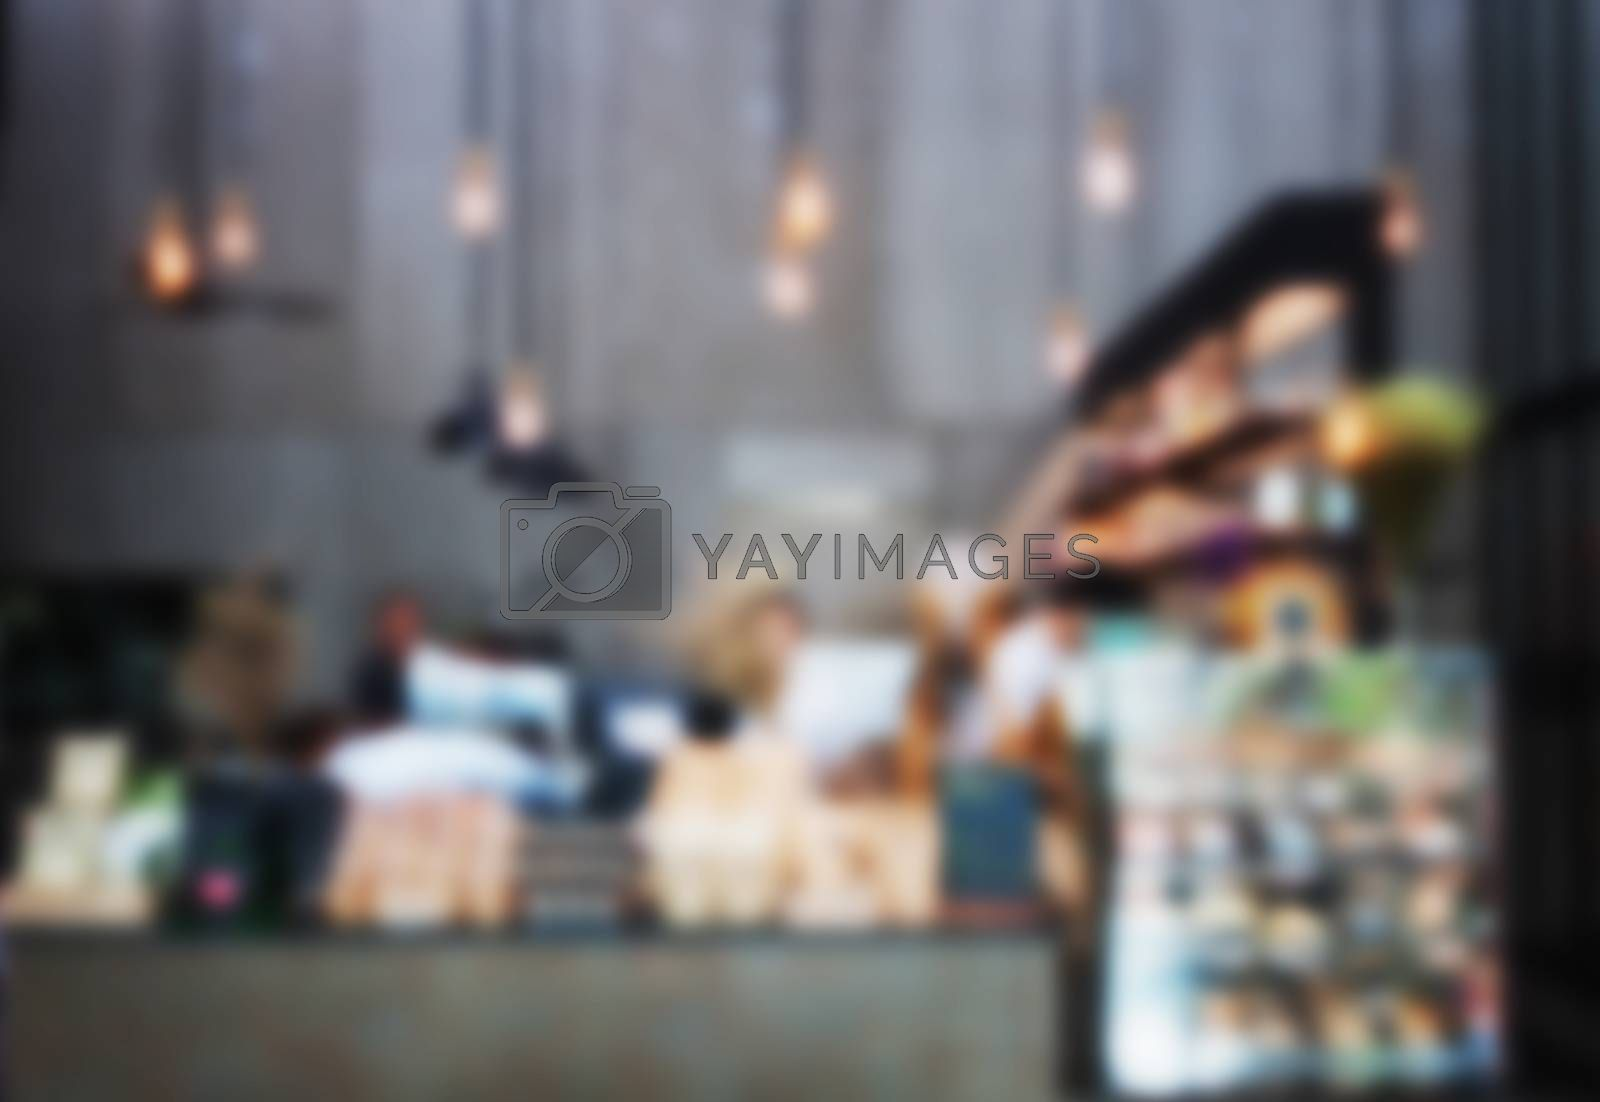 Blurred background in coffee shop, stock photo